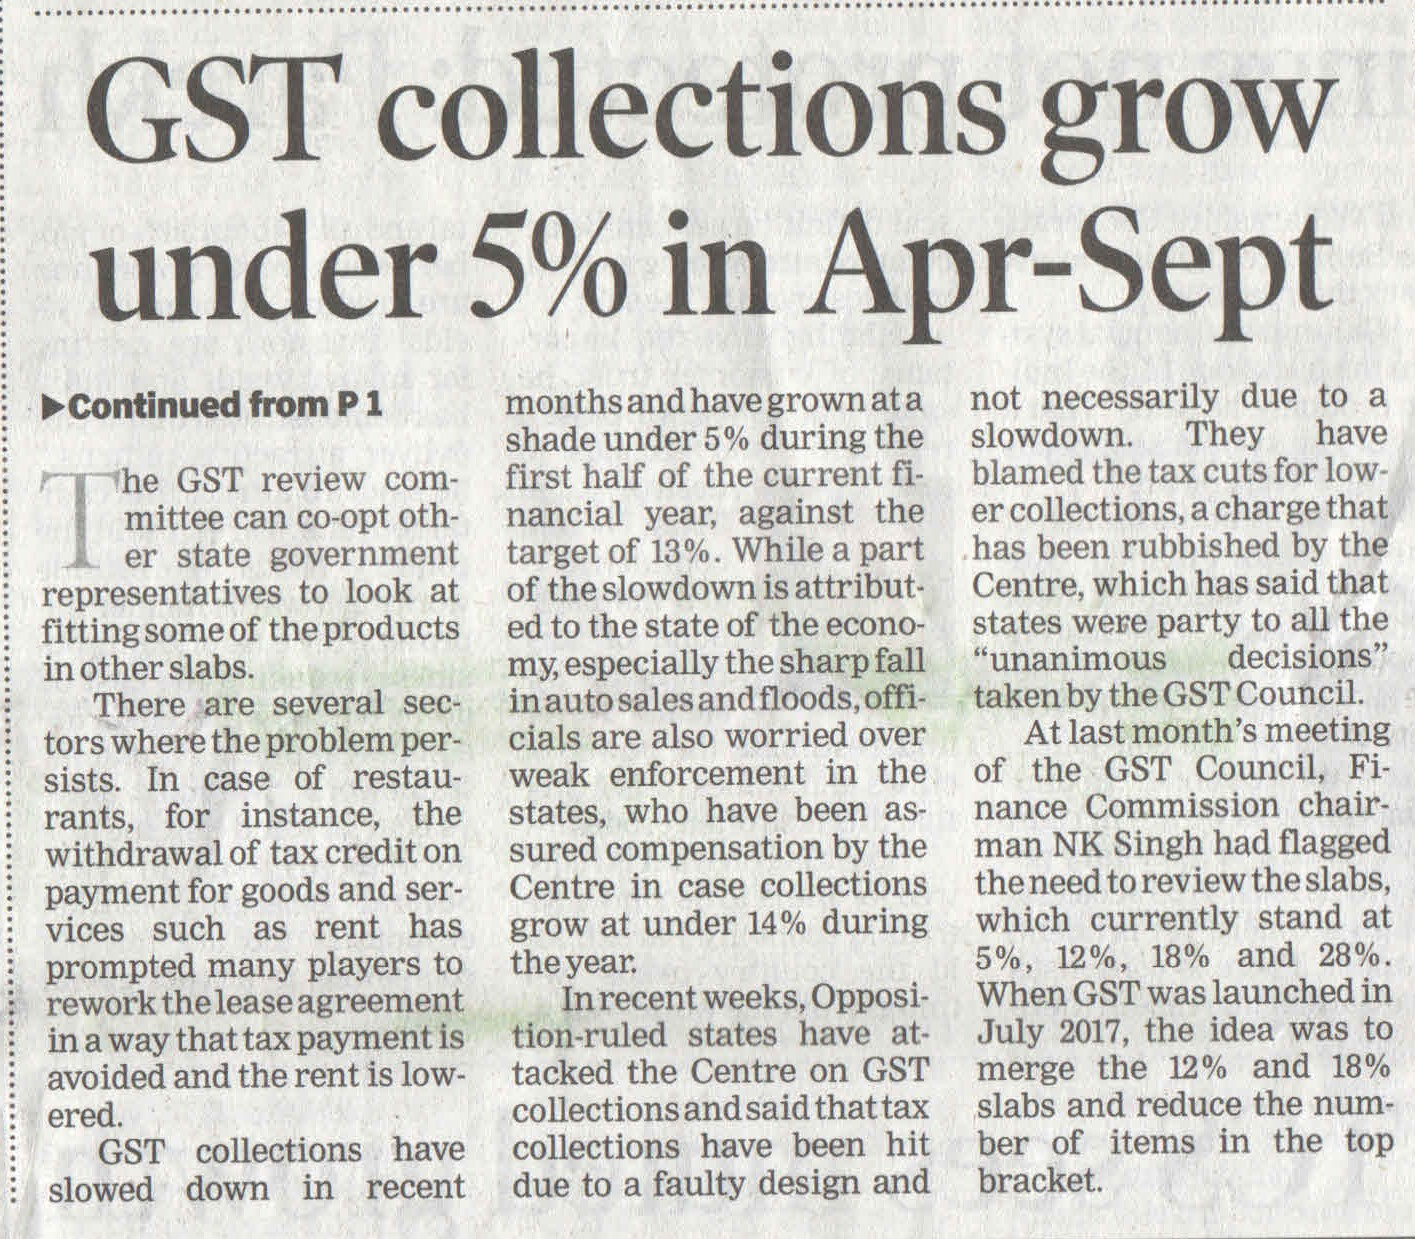 GST collection grow under 5% in Apr-Sept.